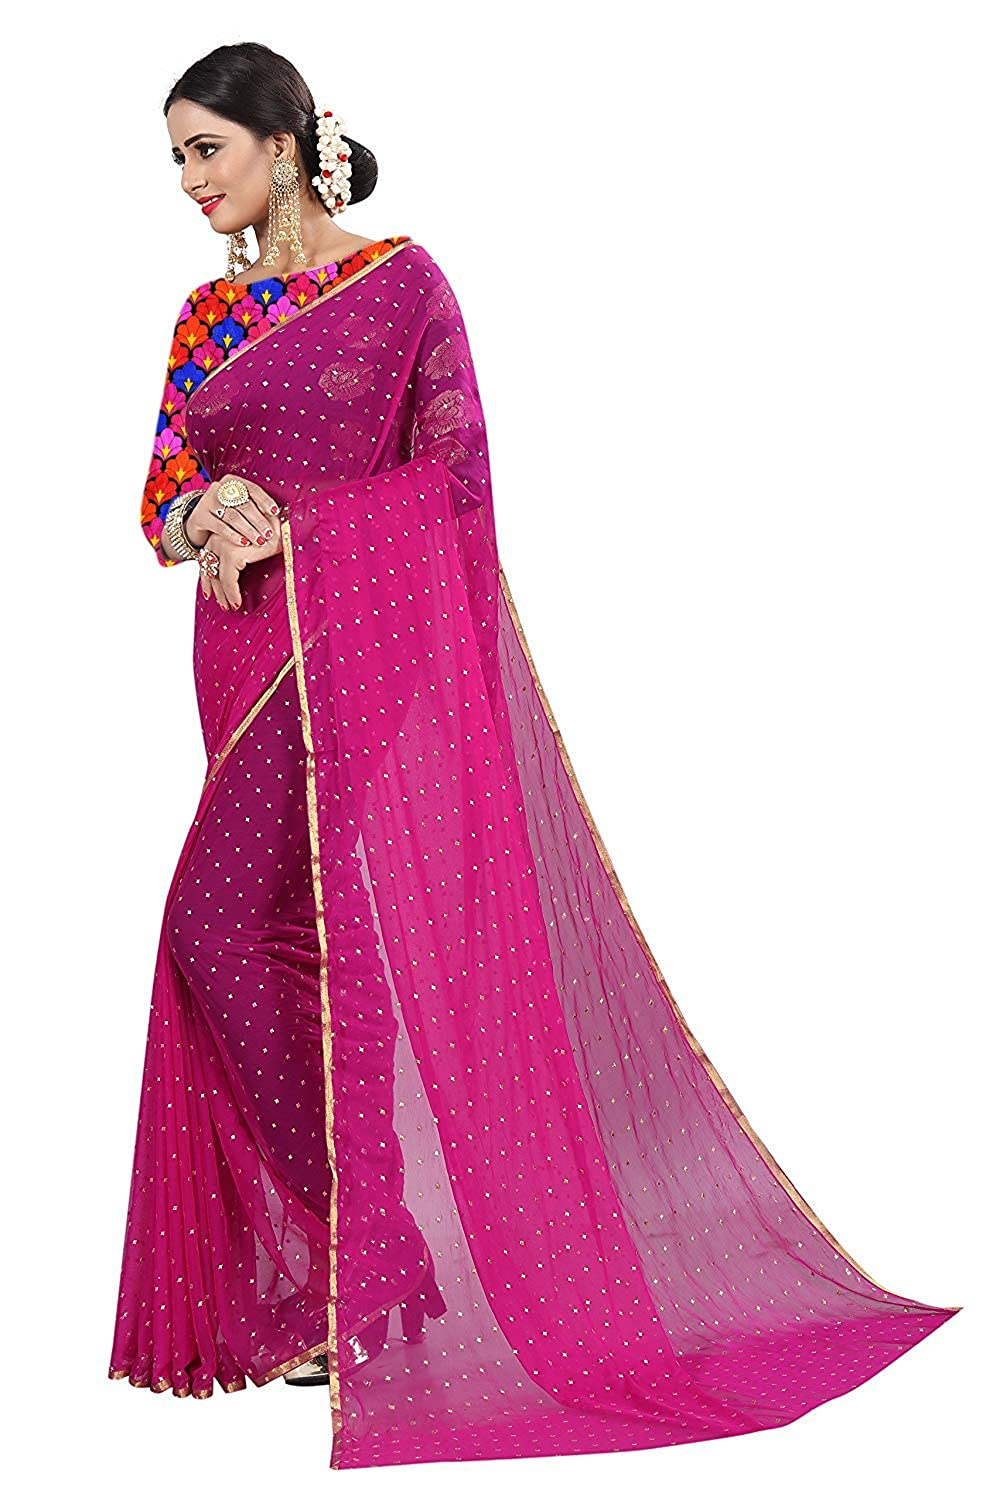 3aeeaa5cf960e Krishna Adv Women s Chiffon Saree with Blouse Piece (Pink   Gold)  Amazon.in   Clothing   Accessories